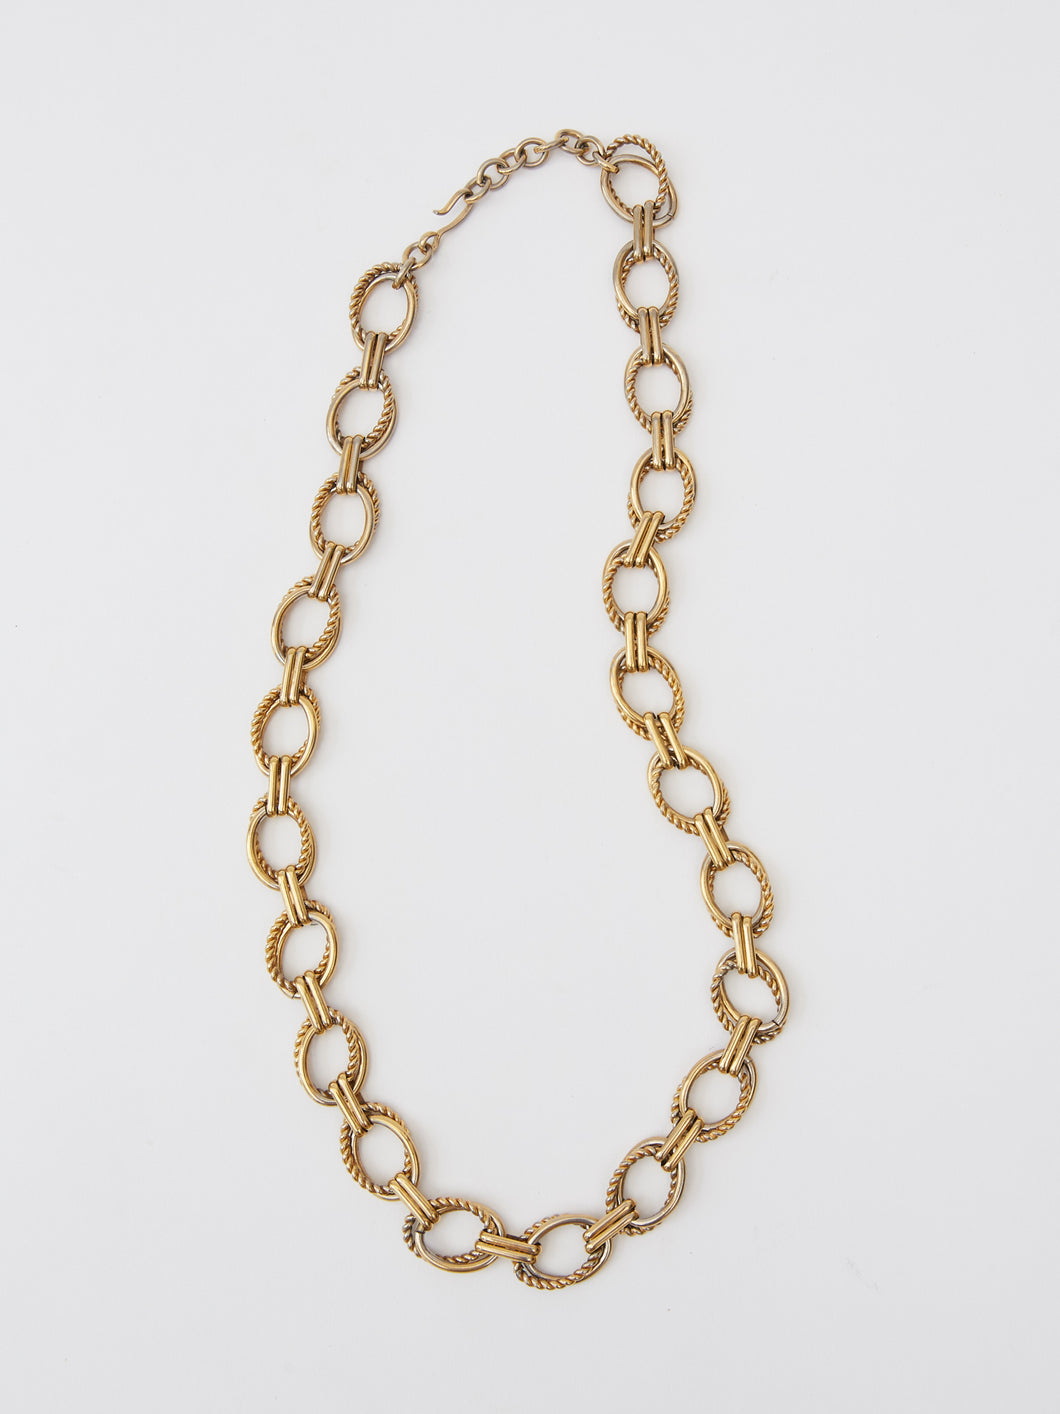 Vintage Braided and Smooth Link Chain